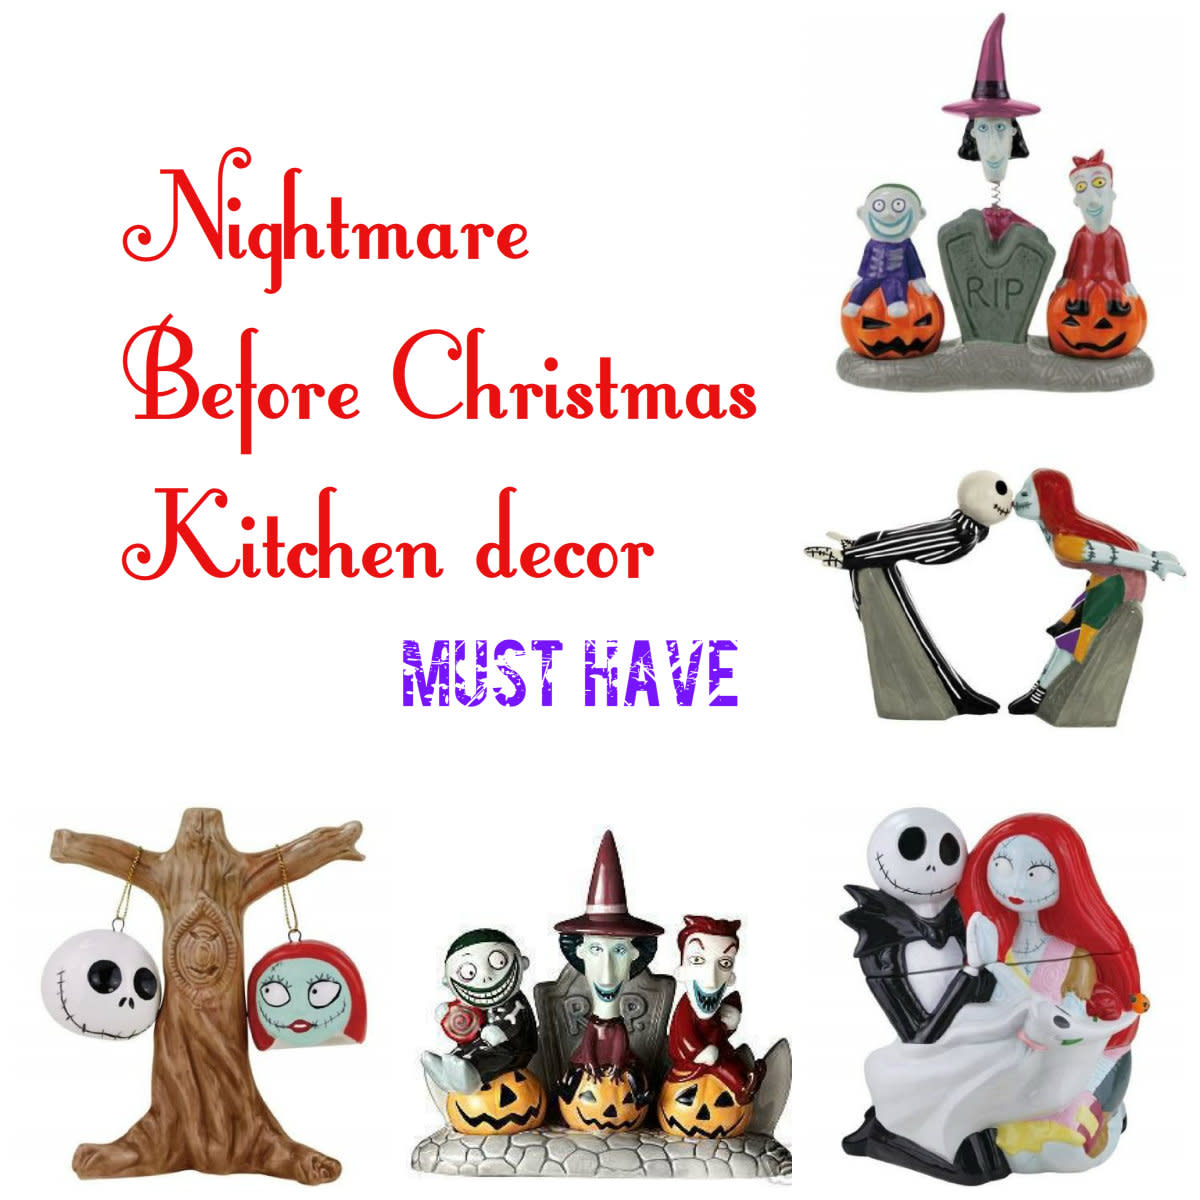 Nightmare Before Christmas Kitchen Accessories and Décor